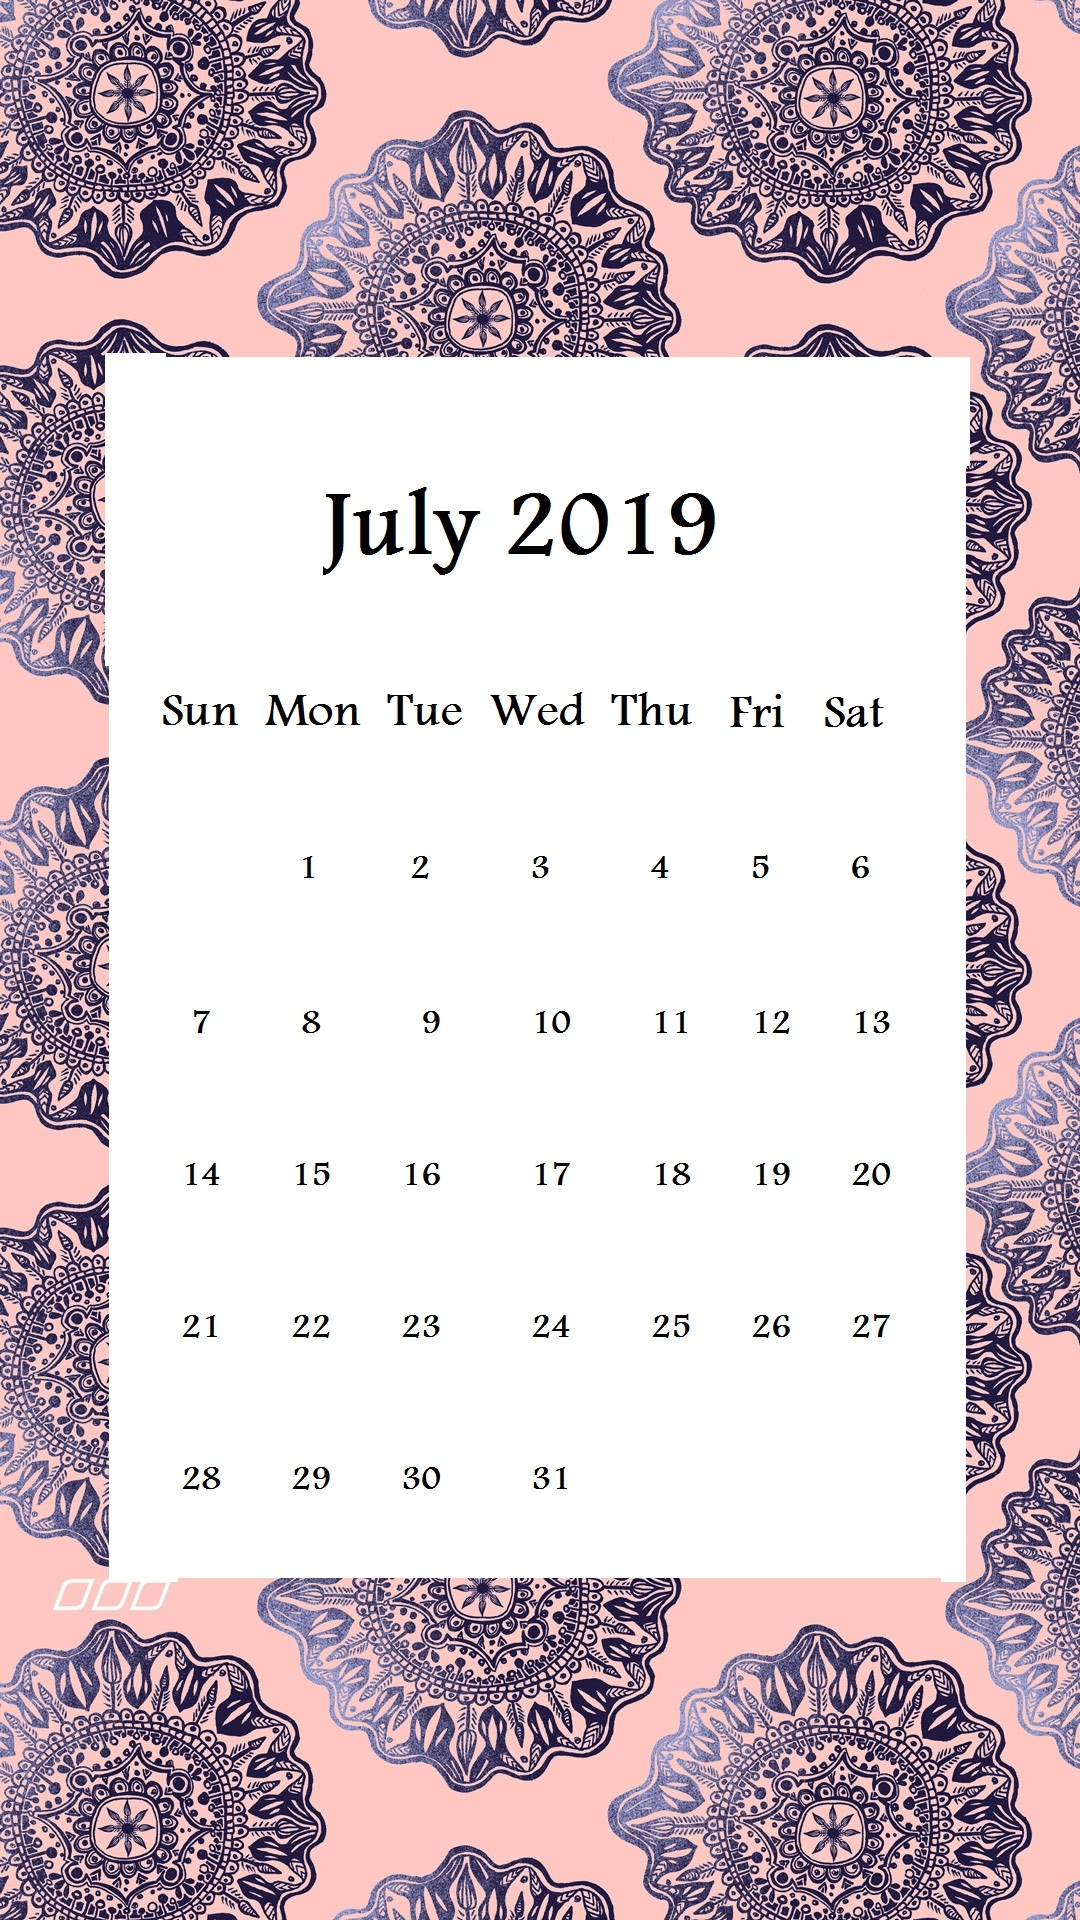 july 2019 iphone calendar wallpapers calendar 2019::July 2019 iPhone Calendar Wallpaper